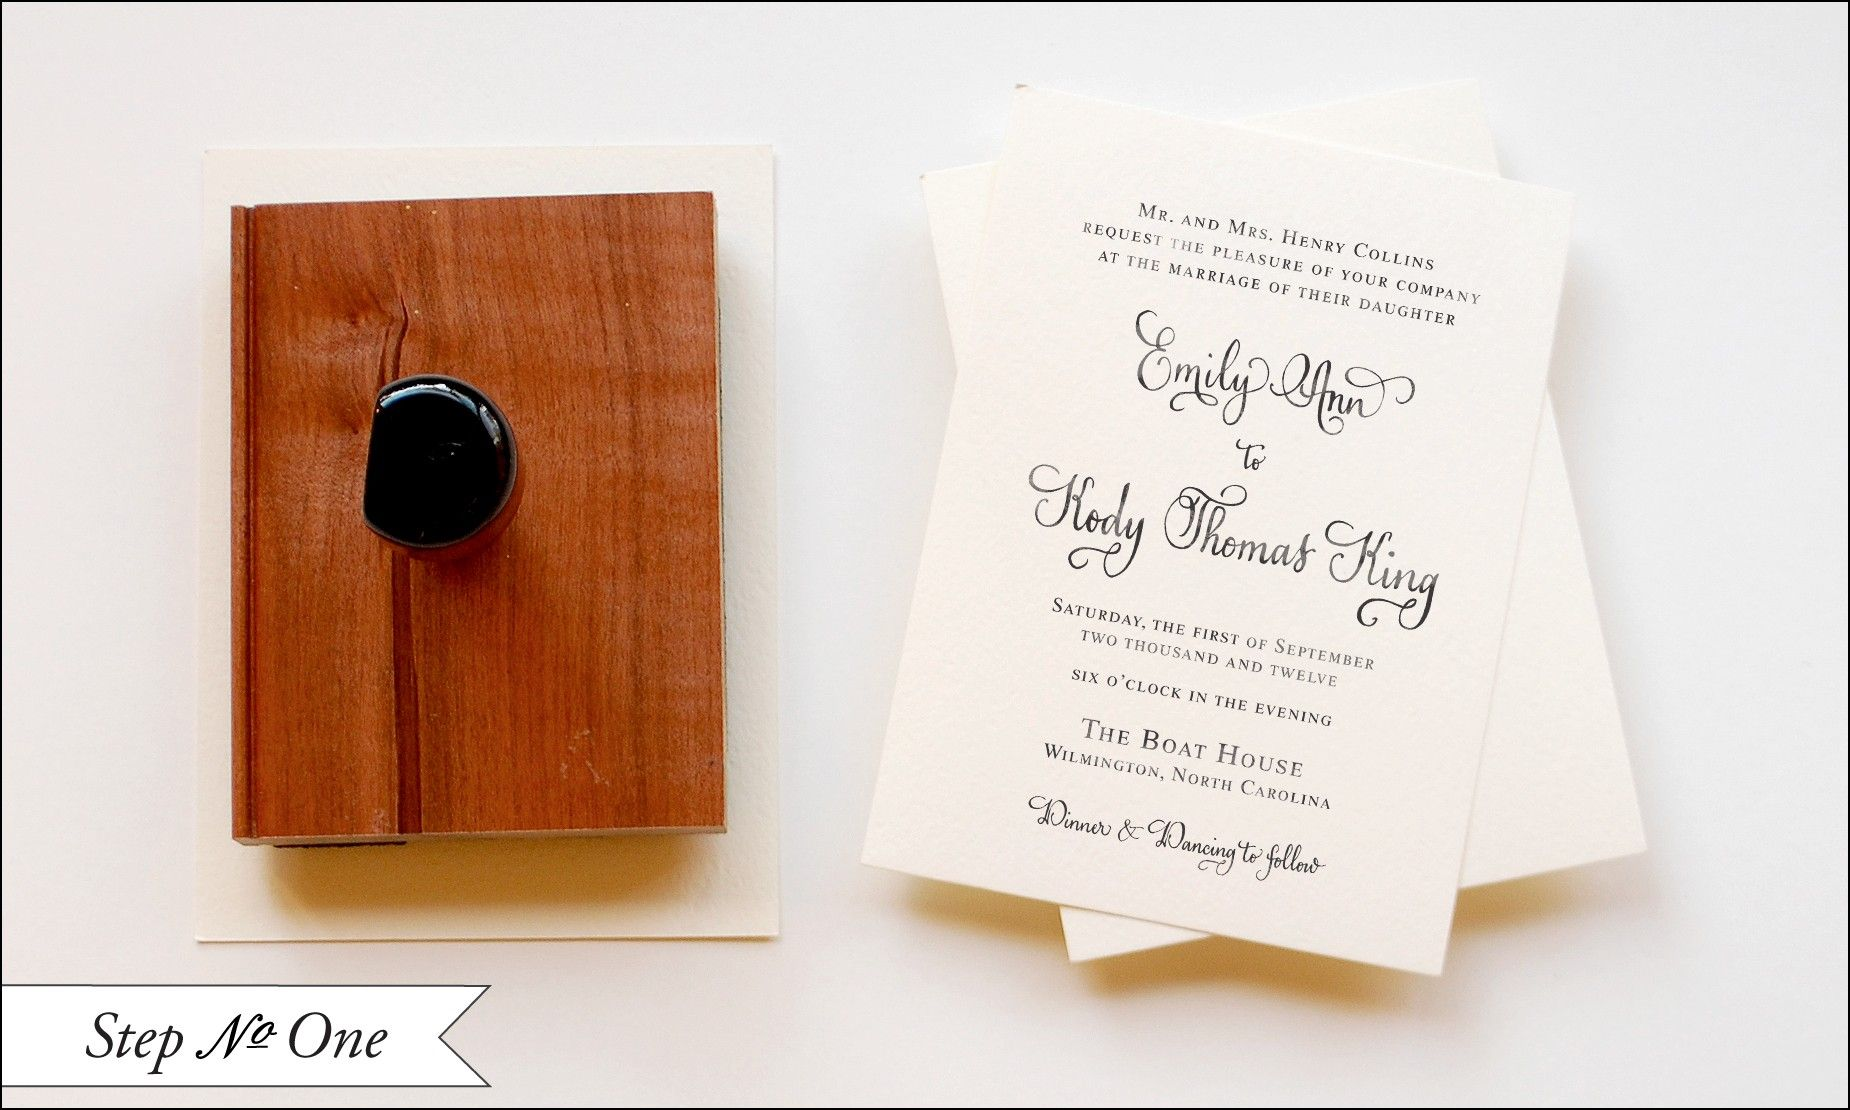 Ink Stamps for Wedding Invitations | Wedding Invitations | Pinterest ...